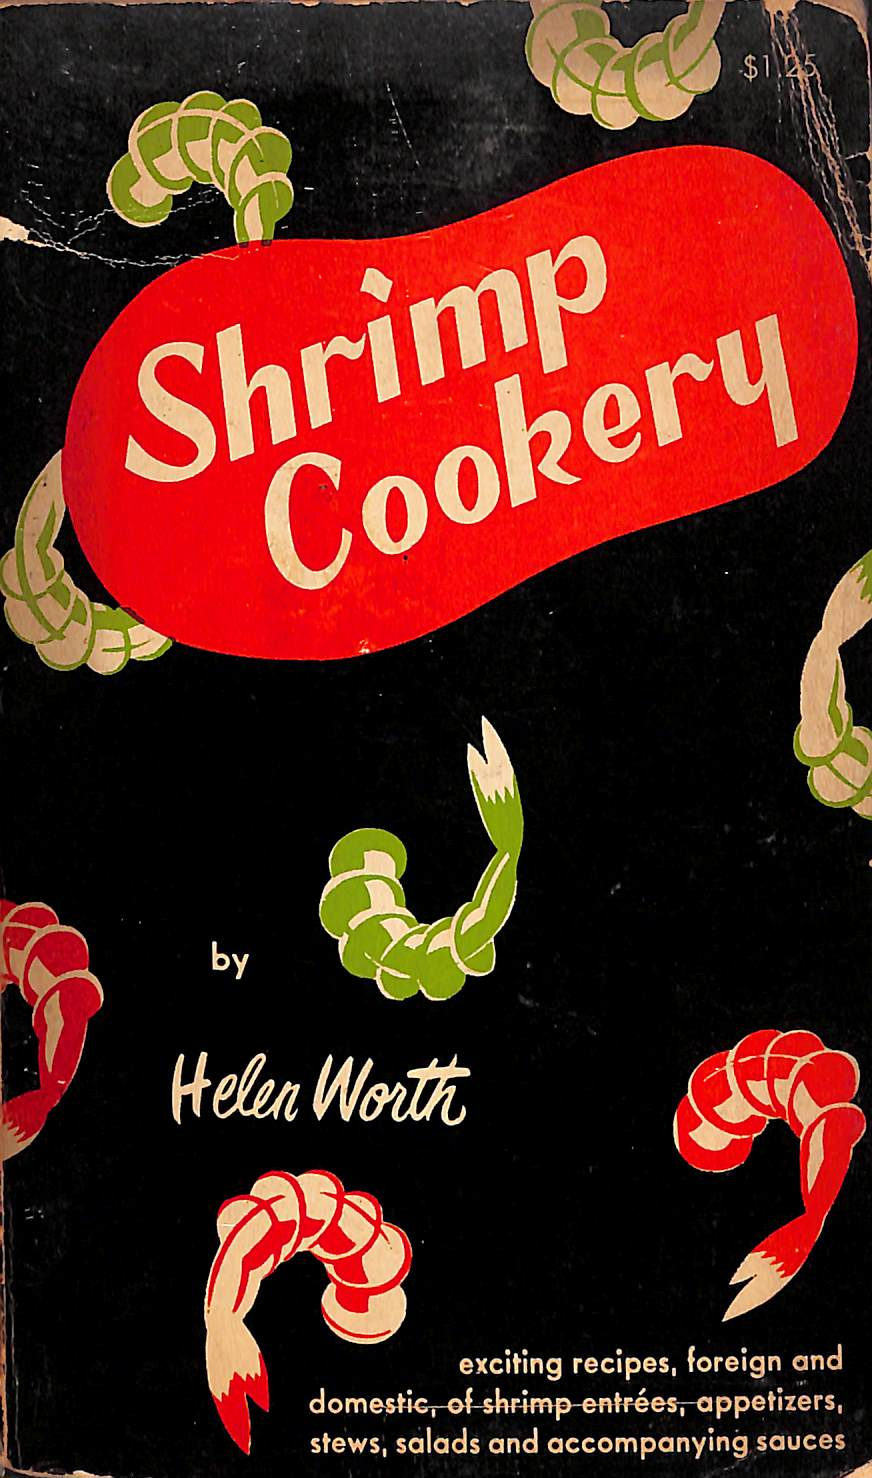 Shrimp Cookery: Over 100 Recipes